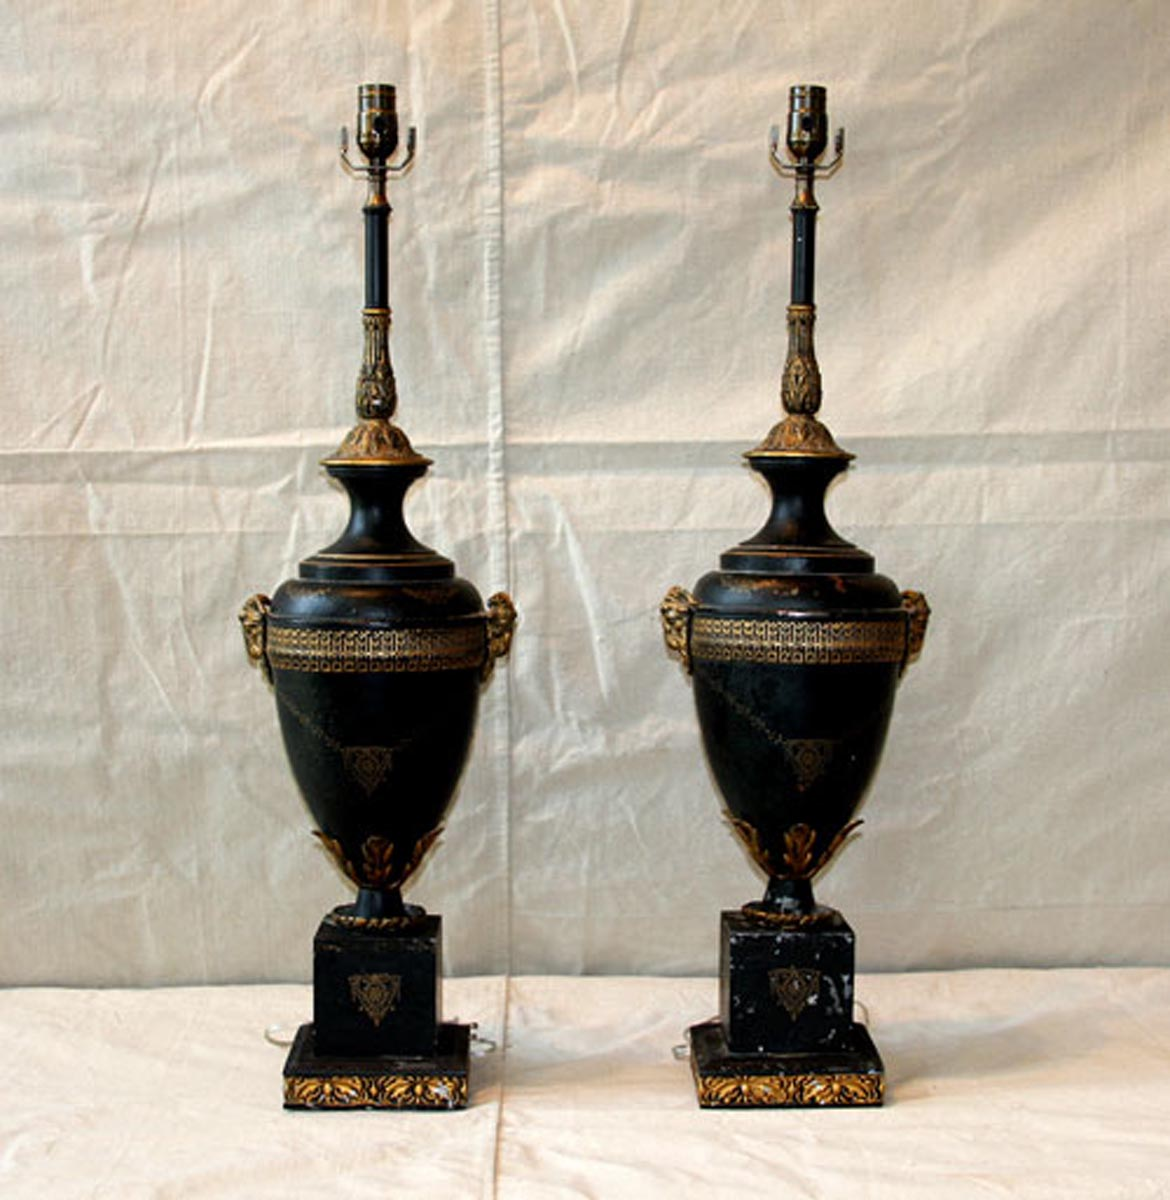 Pair of Black & Gold Tole Table Lamps